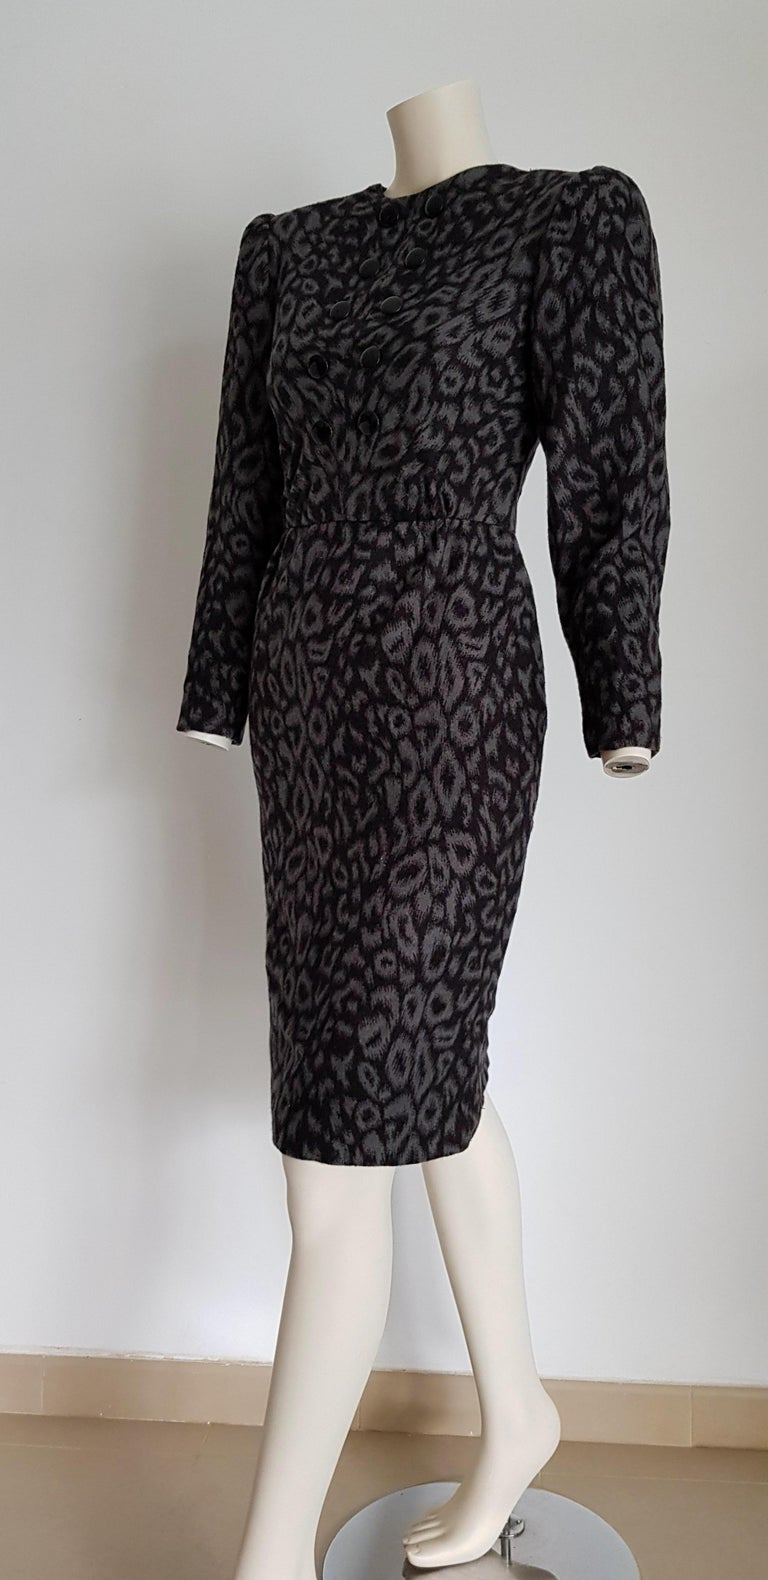 VALENTINO black and grey leopard print cashmere dress - Unworn, New. .. SIZE: equivalent to about Small / Medium, please review approx measurements as follows in cm: lenght 102, chest underarm to underarm 48, bust circumference 87, shoulder from